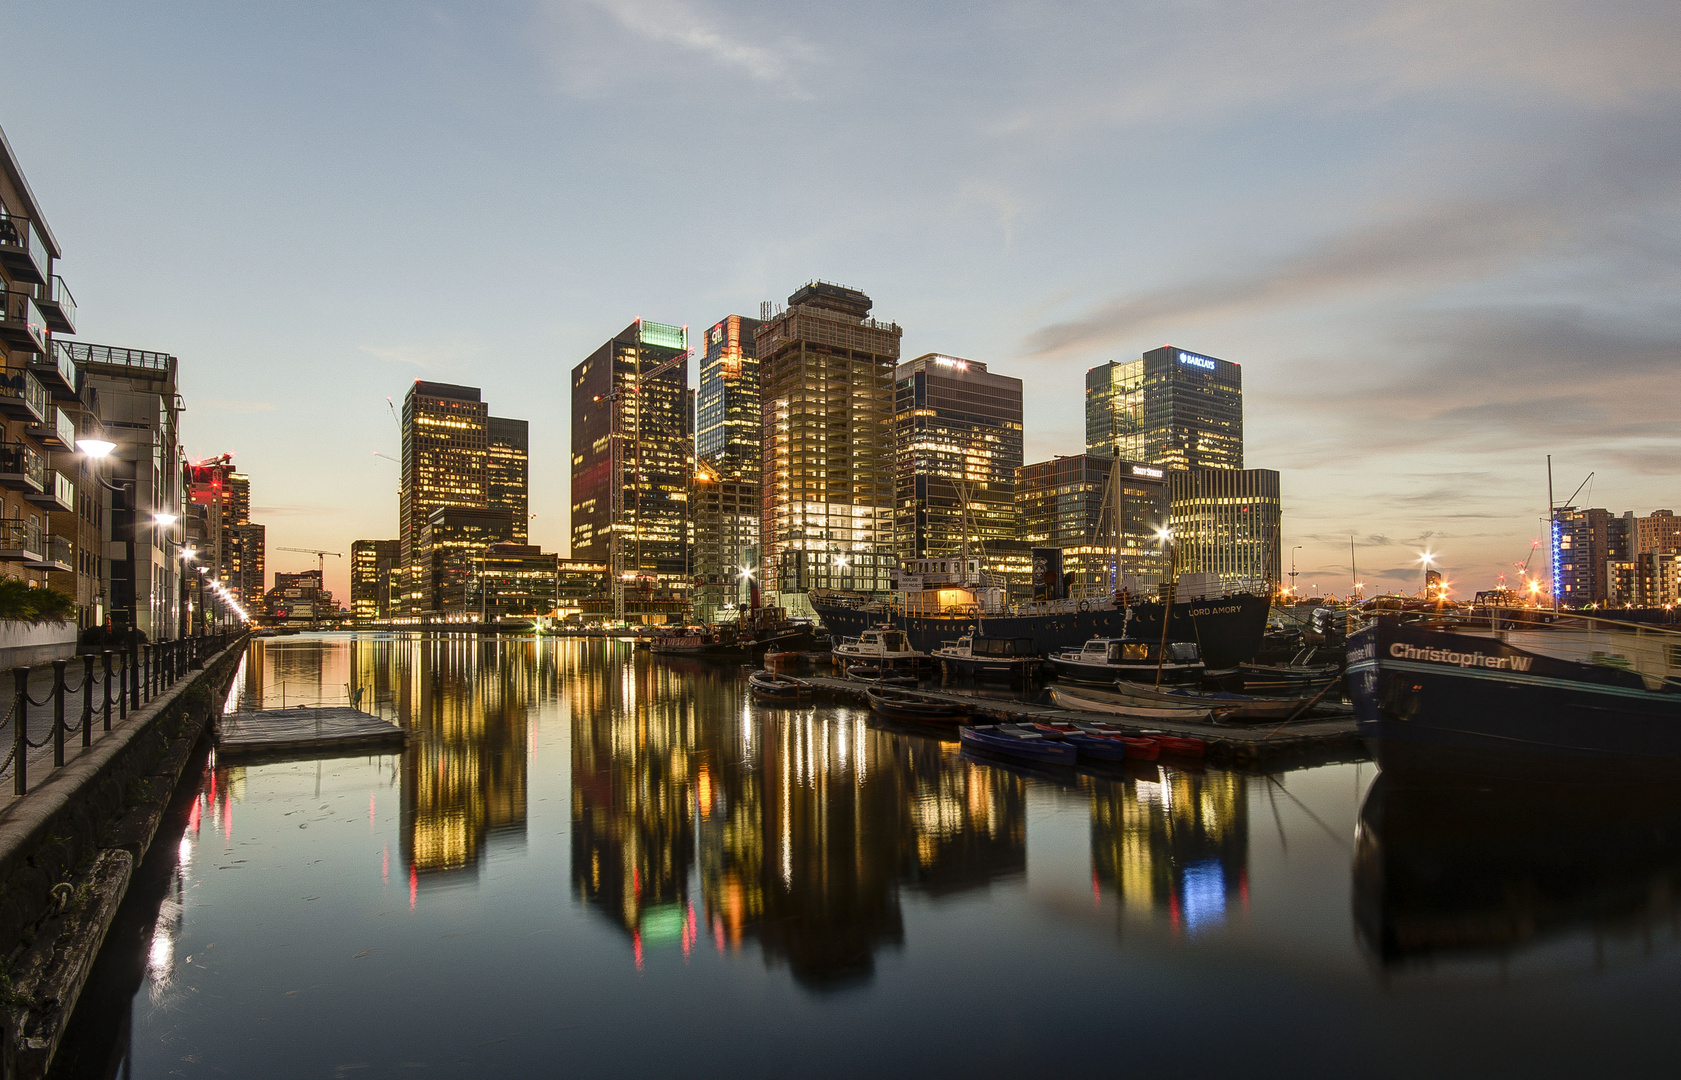 London - Canary Wharf - South Quai Walk - 06